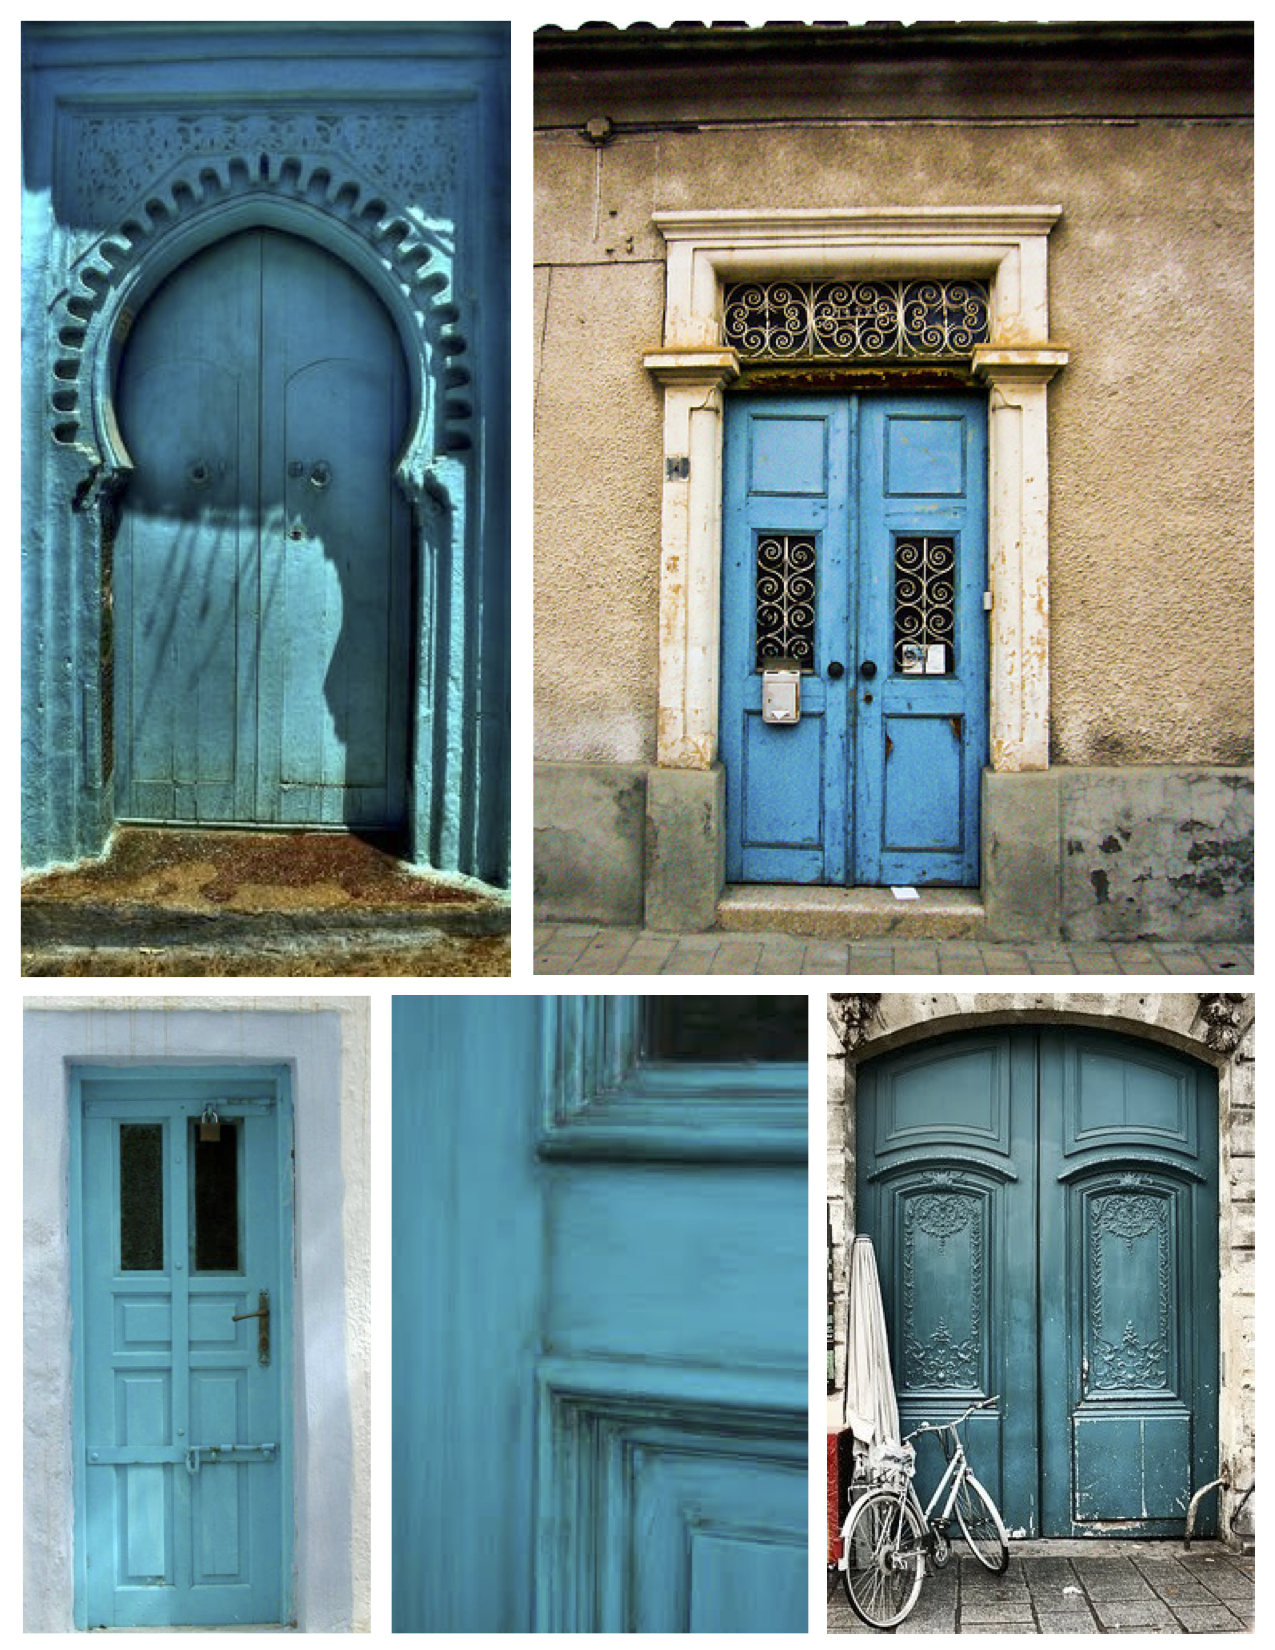 ... Turquoise Exterior Door: Striking Energy Of Vivid, Fresh Appeal